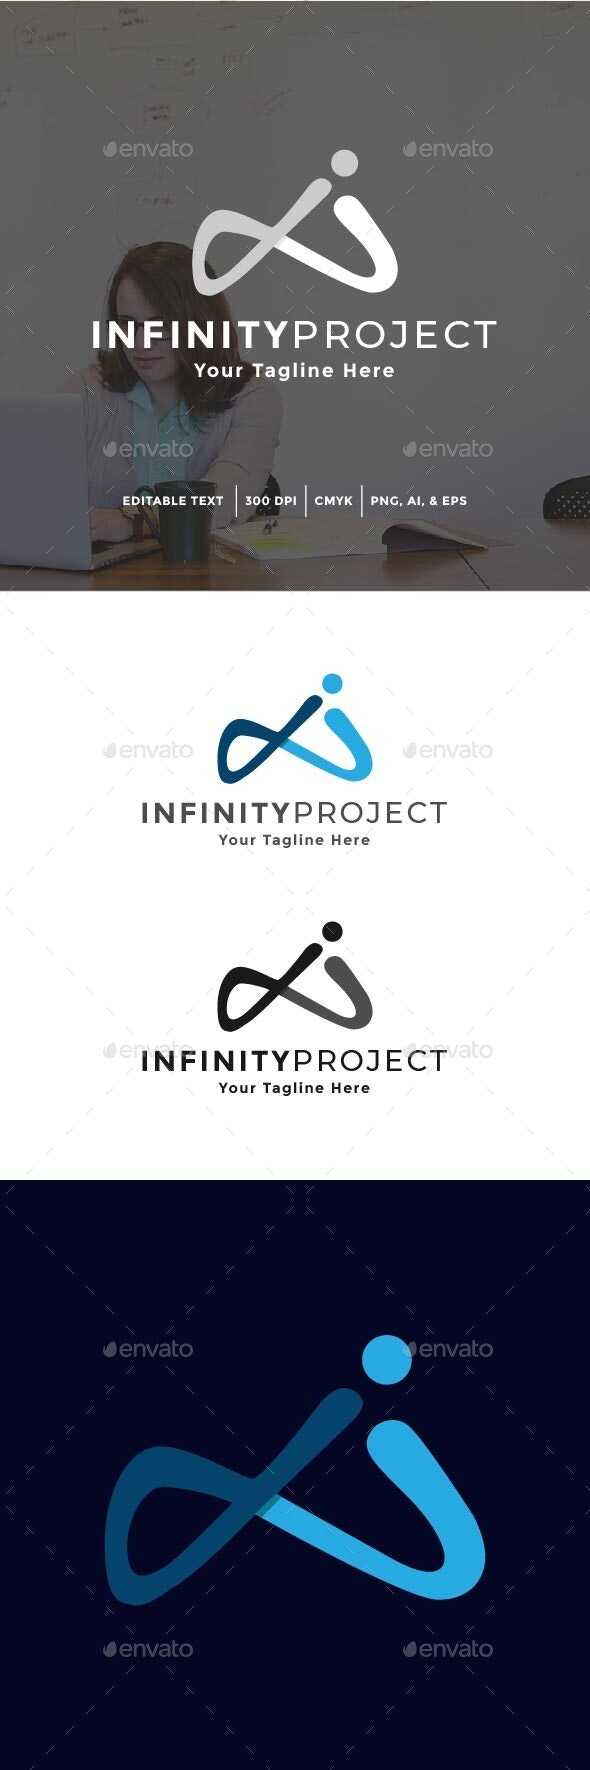 Infinity Project Logo - Abstract Logo Templates